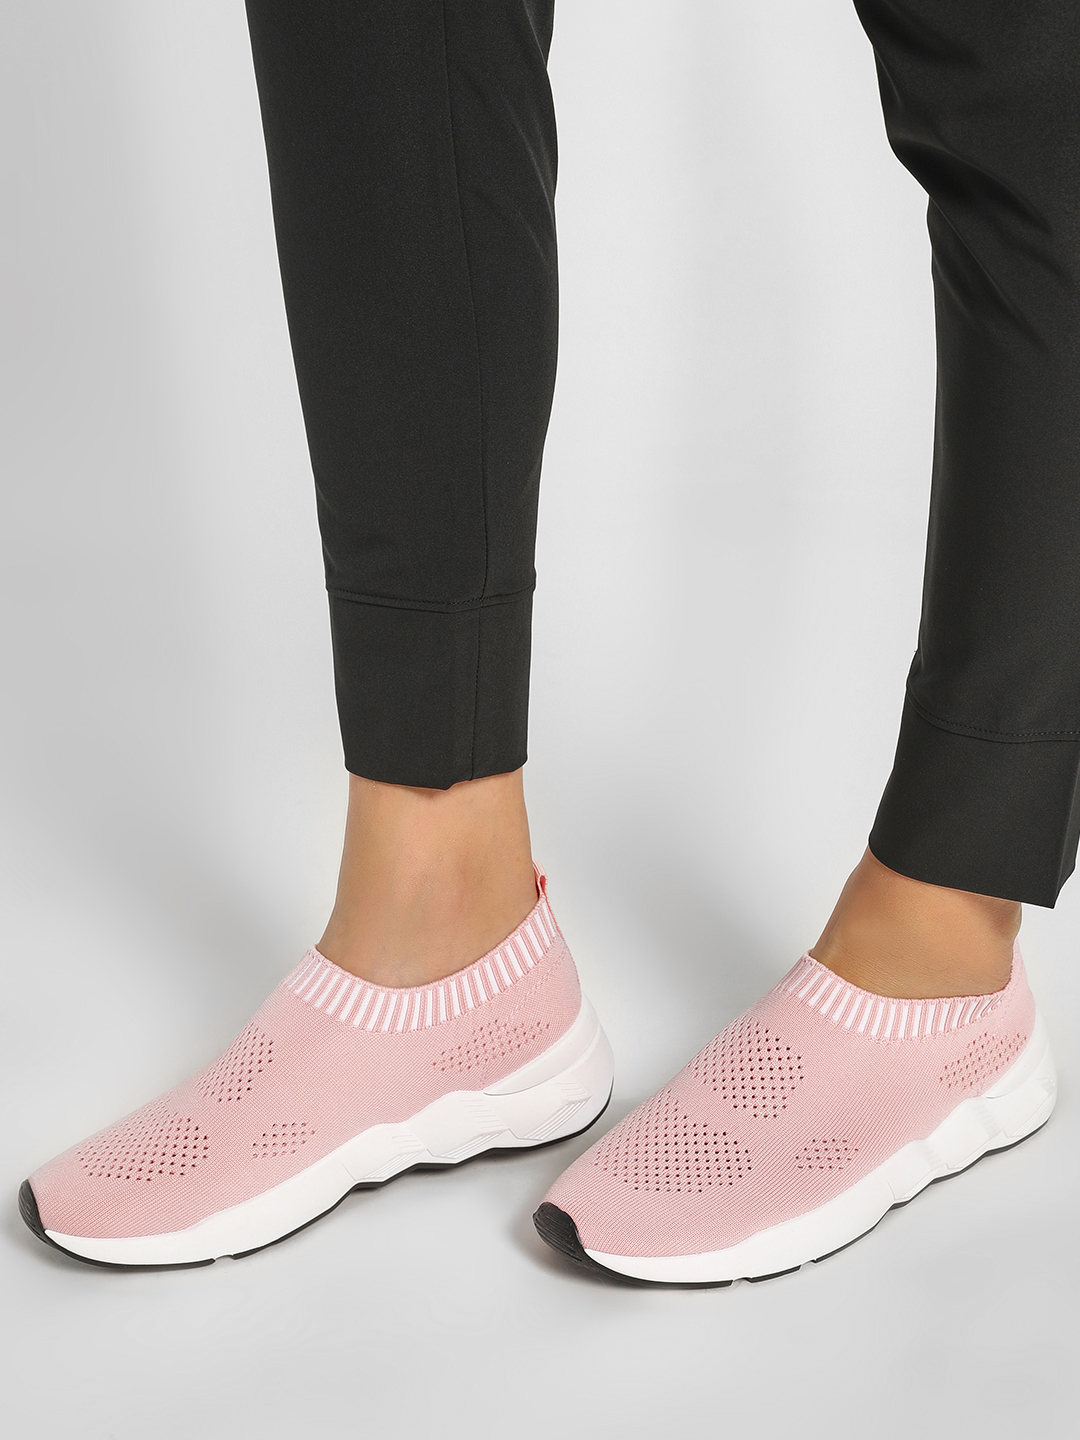 Happy Feet Pink Mesh Socks Trainers 1